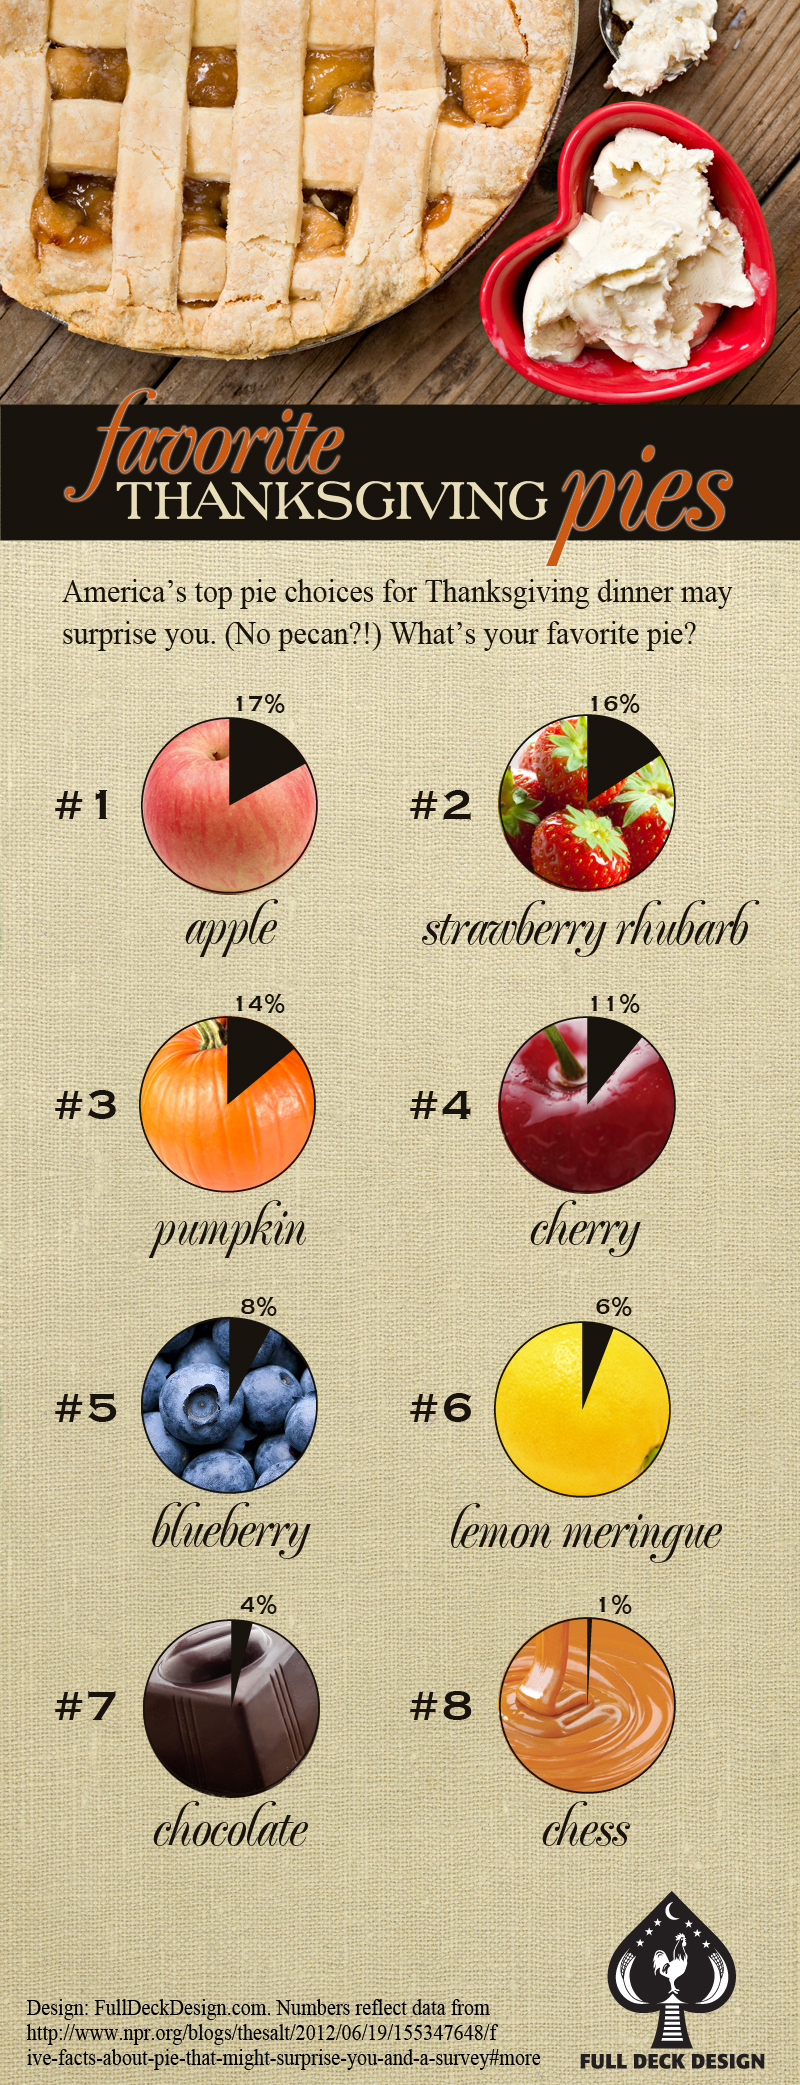 infographic showing top 10 most popular Thanksgiving pies